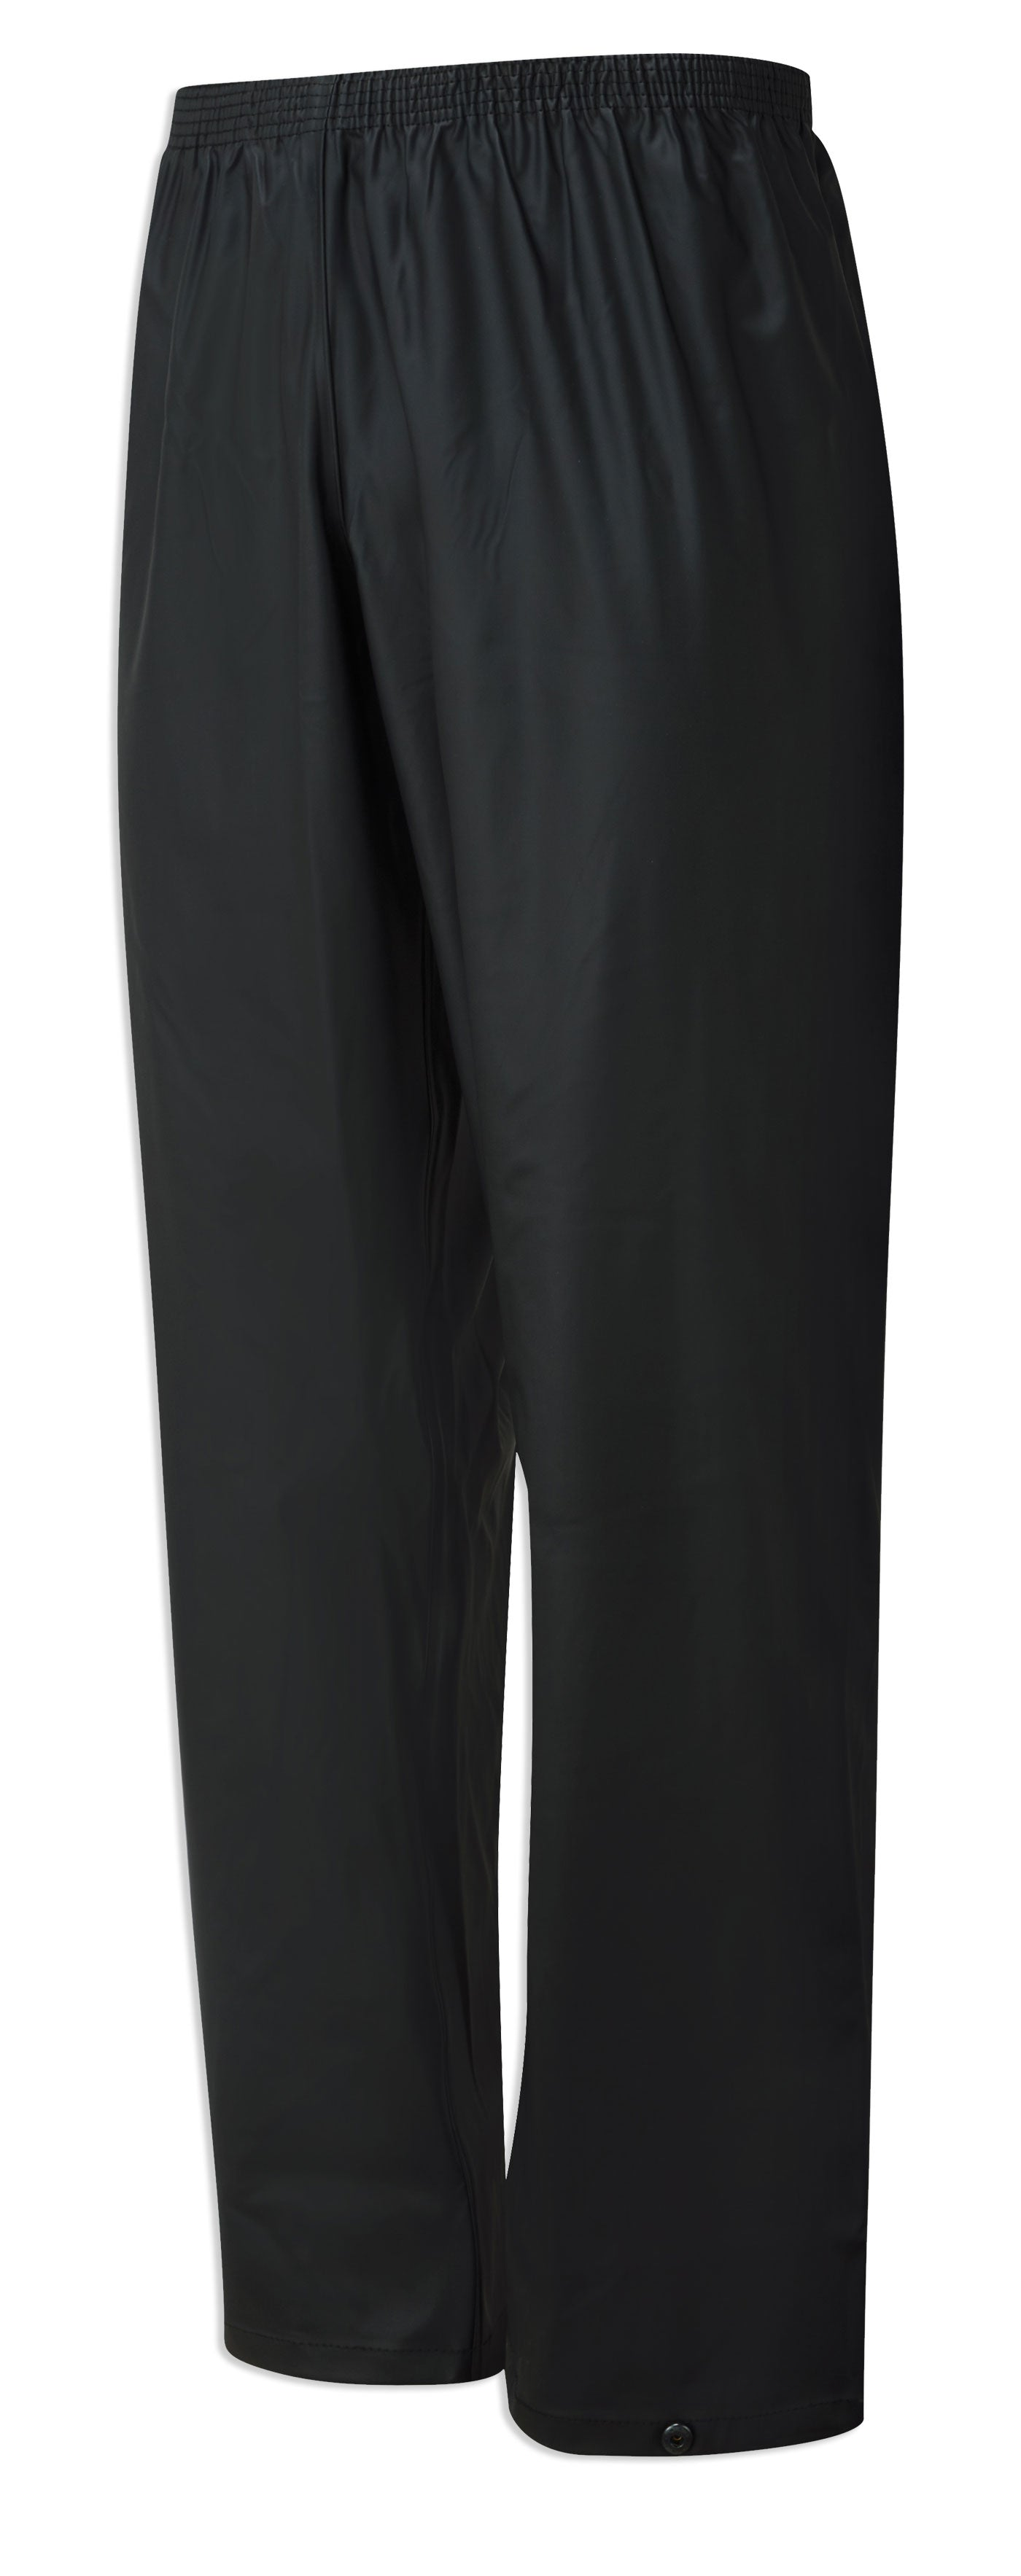 Black waterproof trousers from castle protective clothing